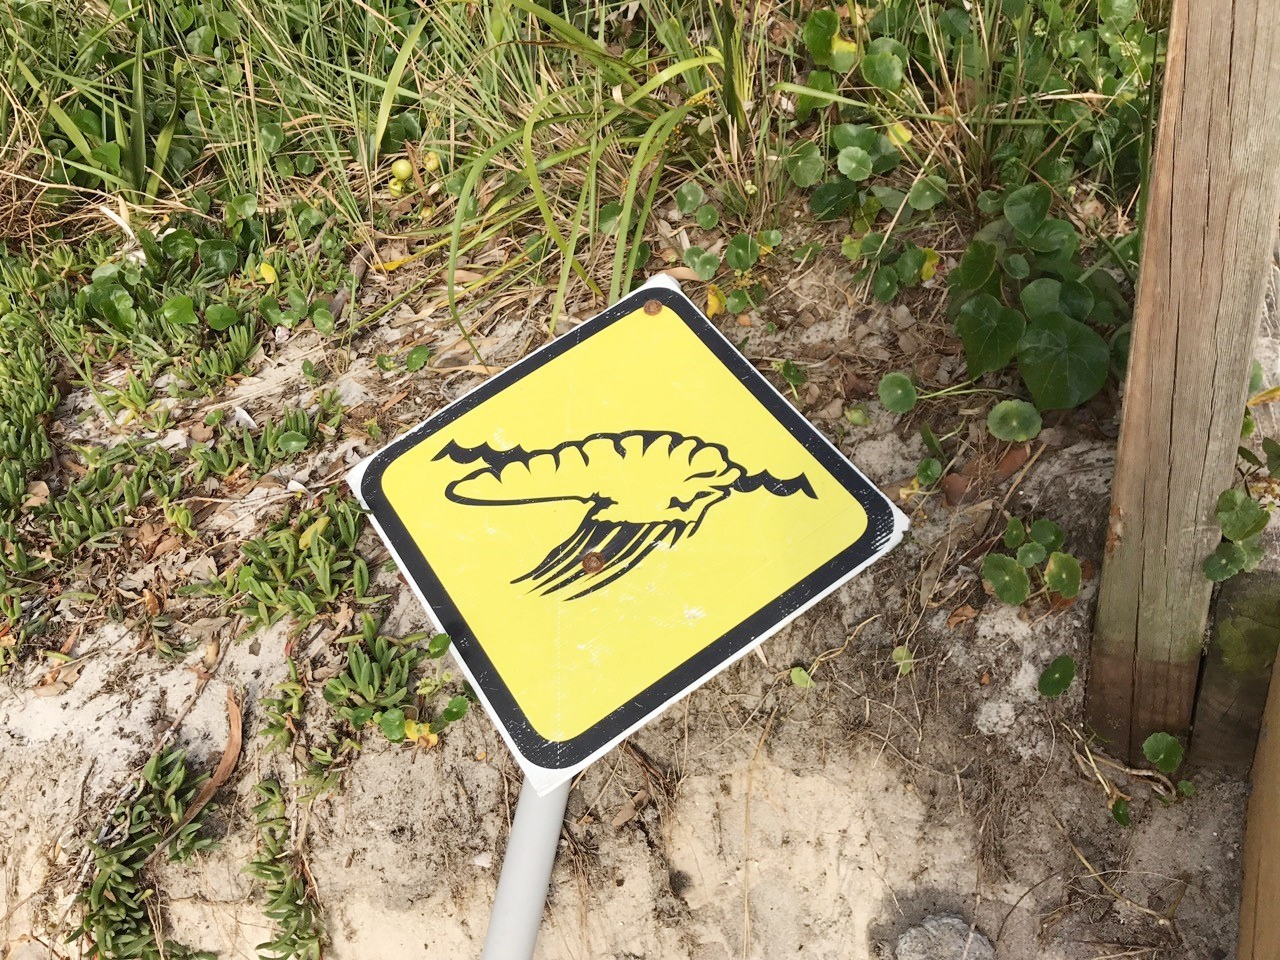 Bluebottle jellyfish warning sign